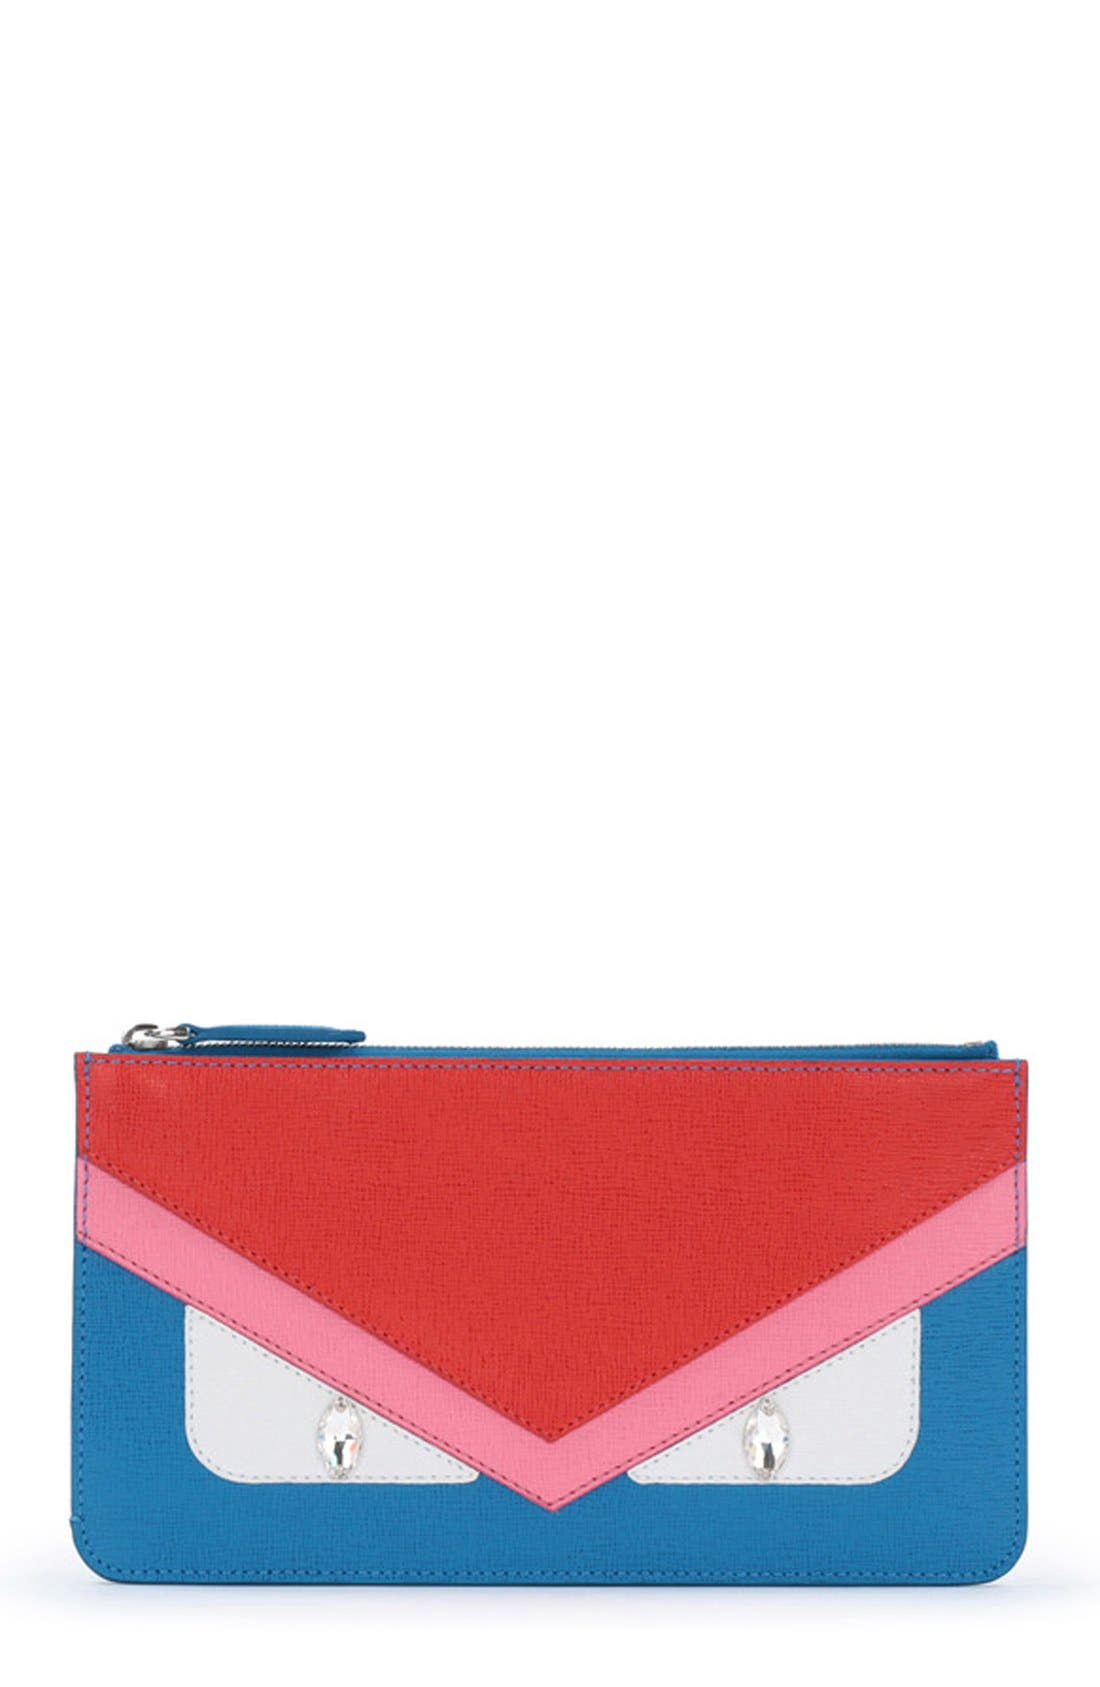 Alternate Image 1 Selected - Fendi 'Monster' Leather Zip Pouch